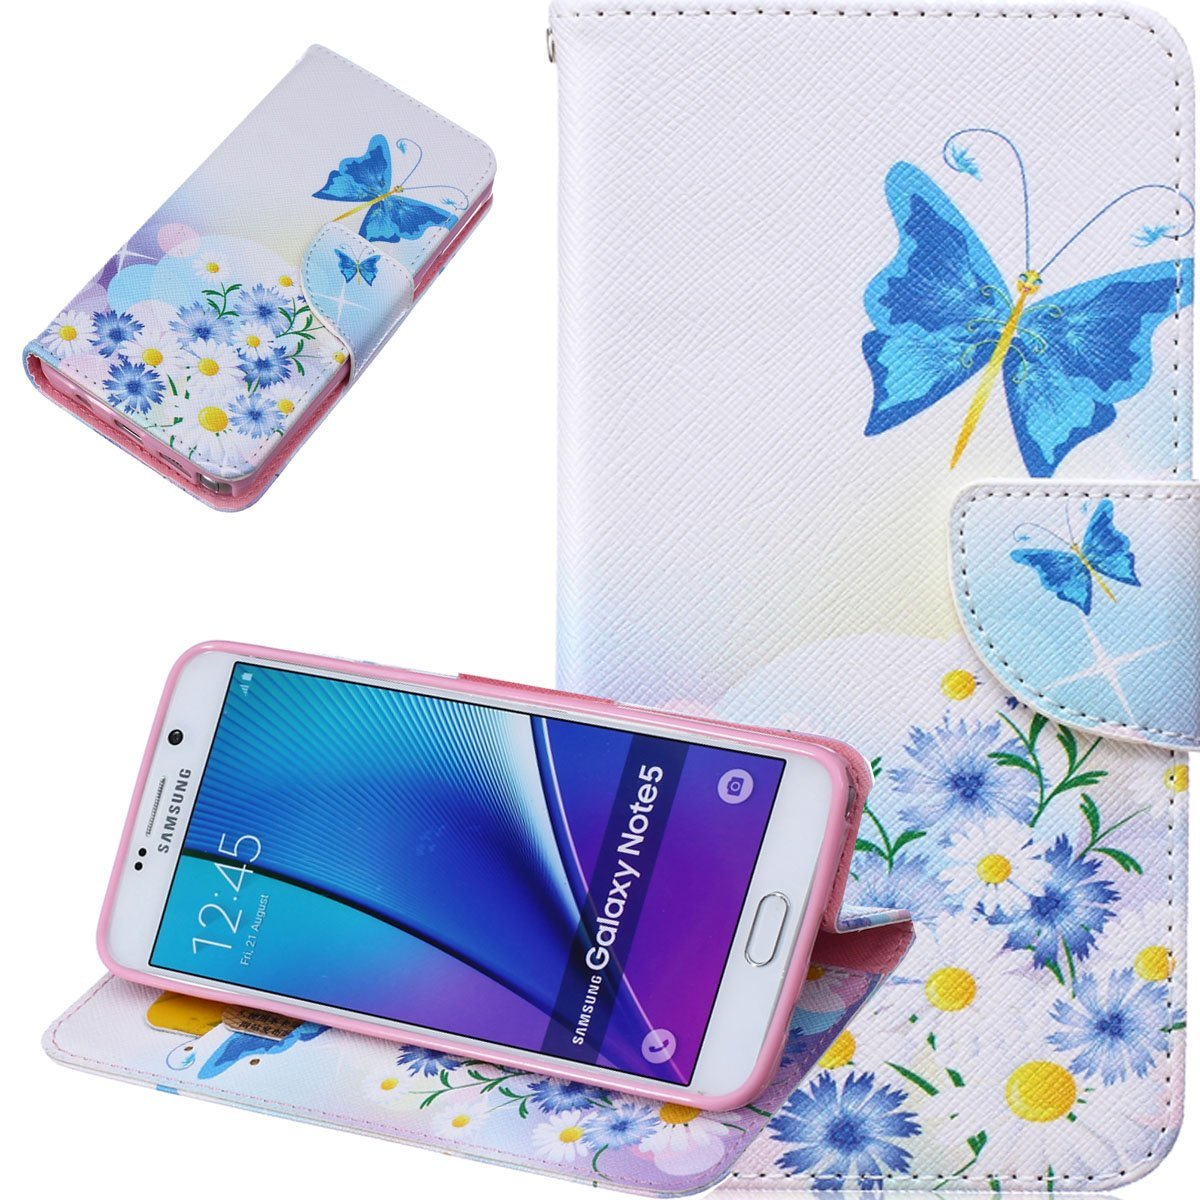 S5 Case,galaxy S5 case,Samsung S5 Case,Samsung Galaxy Case,Samsung Galaxy S5 Case,S5 Leather case,galaxy s5 filp case,case for s5,case for galaxy s5,galaxy case for s5,s5 case cover,Samsung Galaxy S5 wallet case,Panycase Fashionable with credit card holder / slot /money slot Flip Leather Wallet